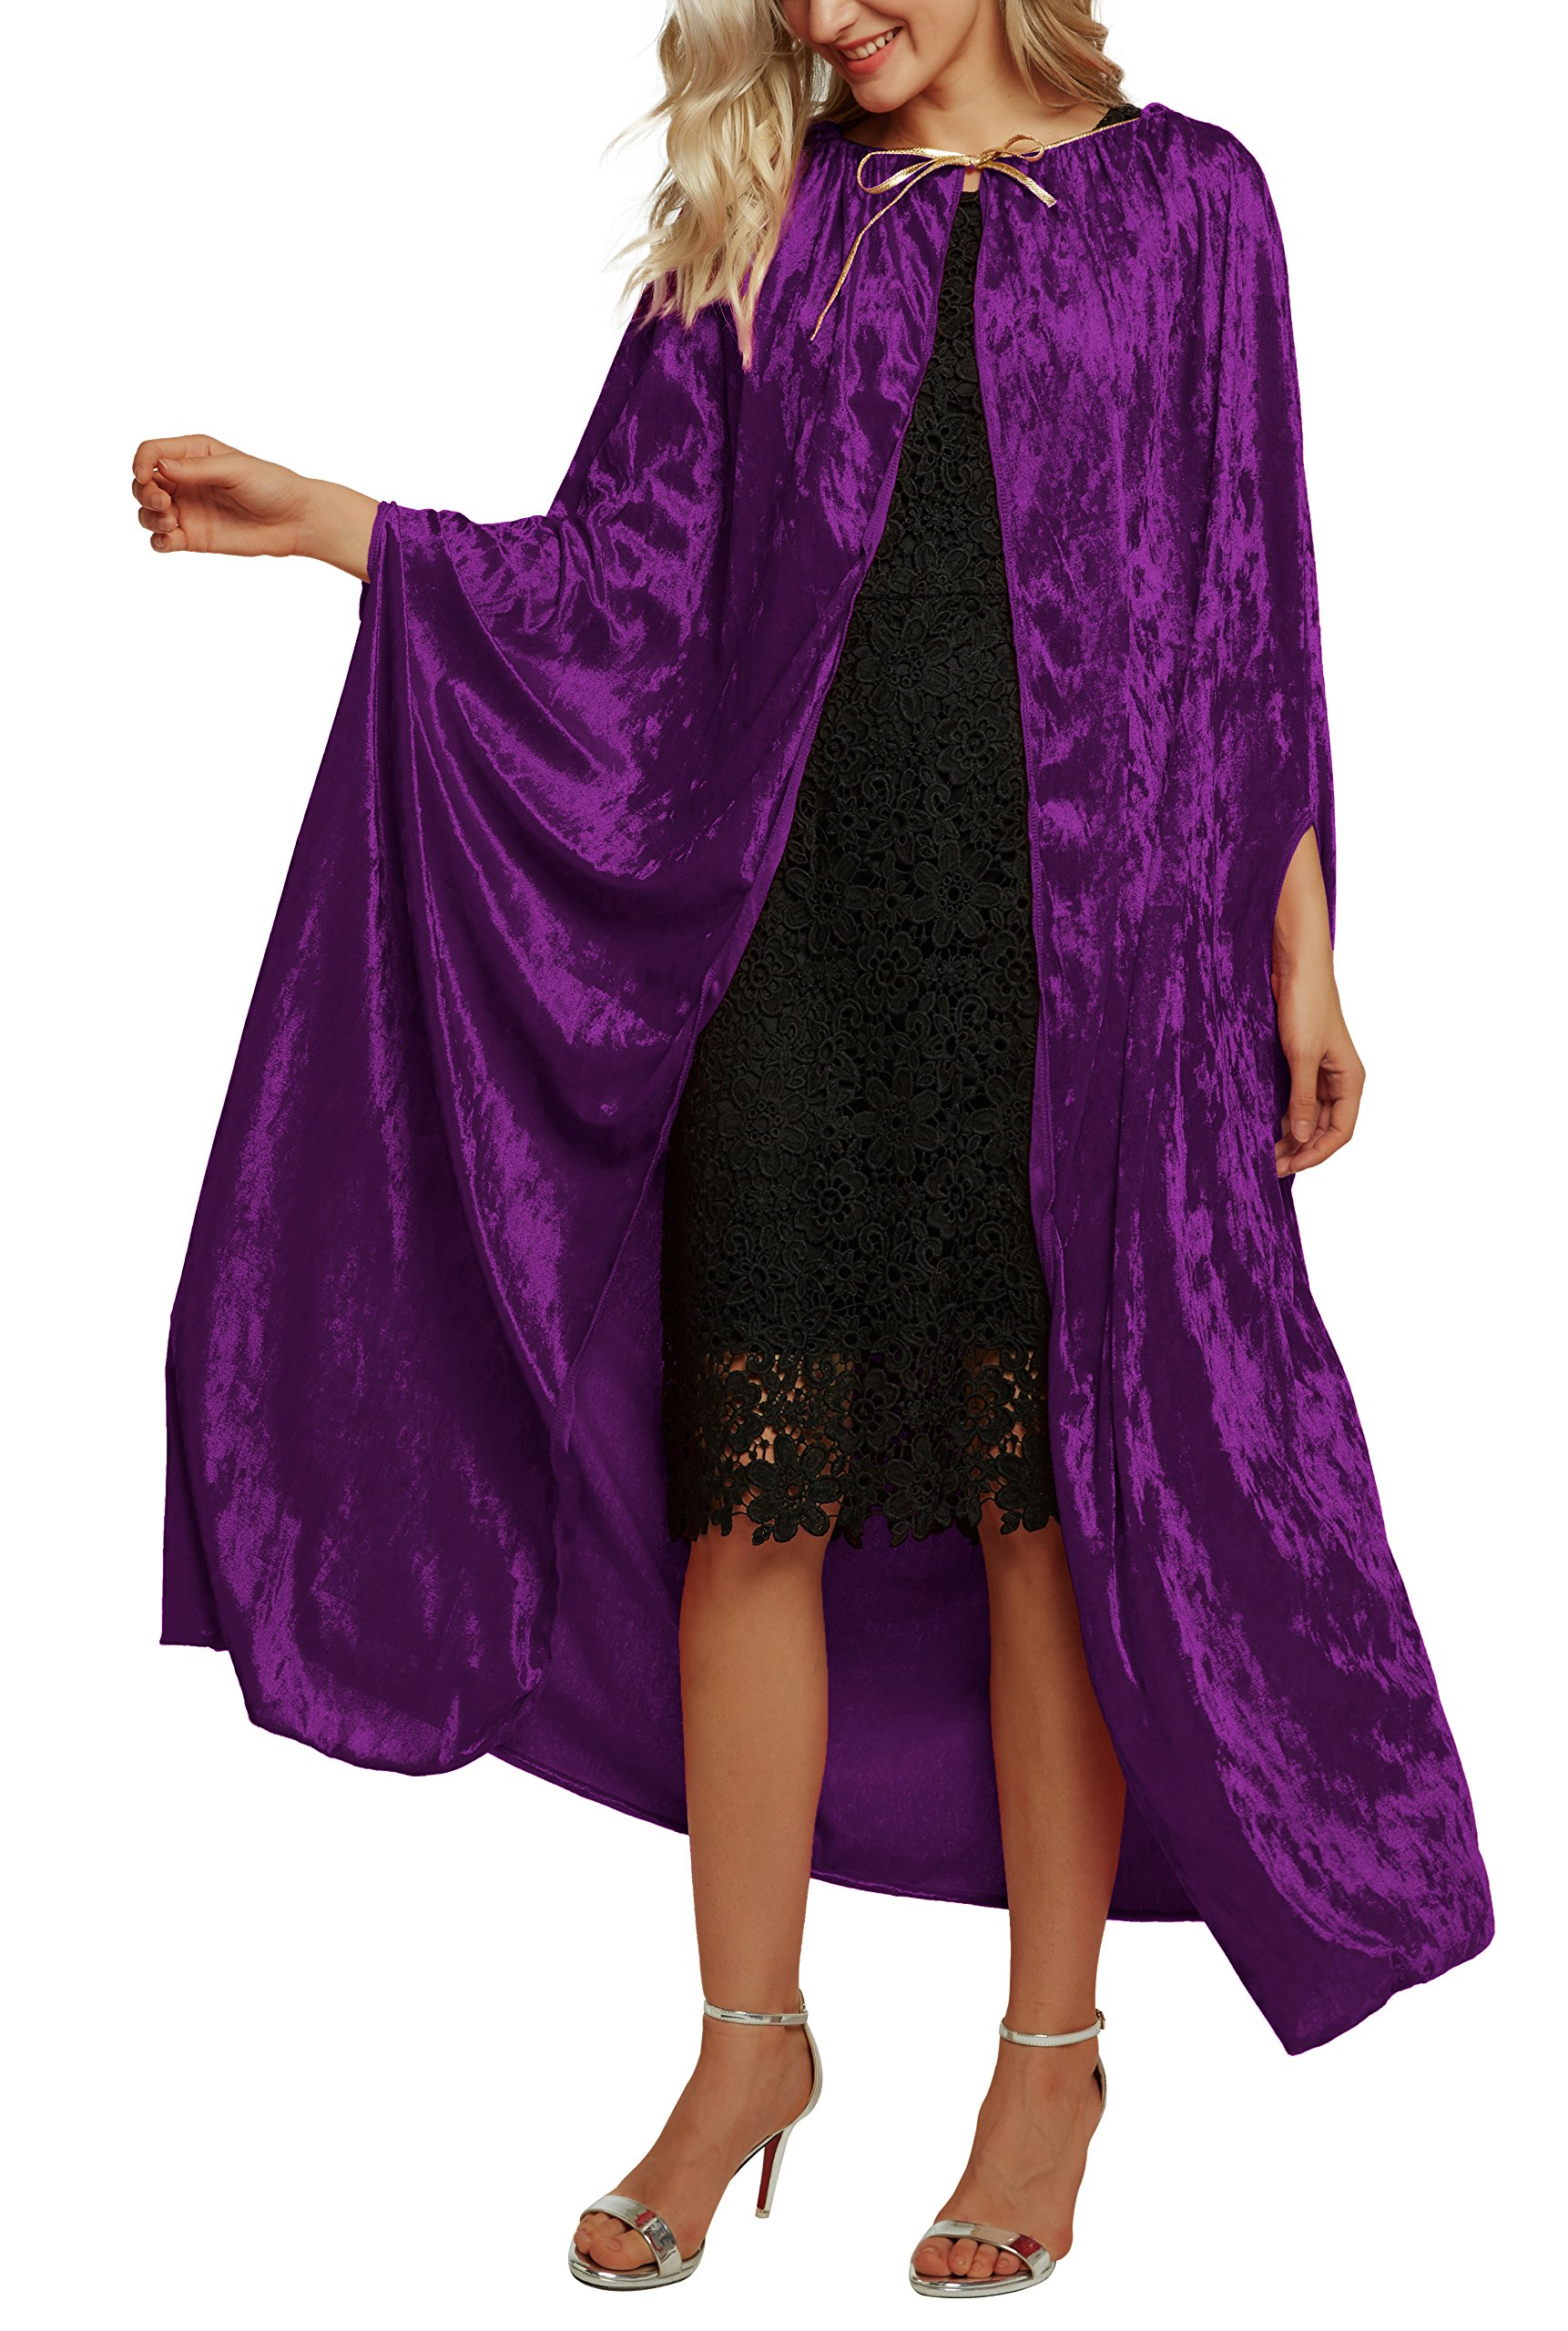 Urban CoCo Women's Costume Full Length Crushed Velvet Hooded Cape (Series 2-Purple) by Urban CoCo